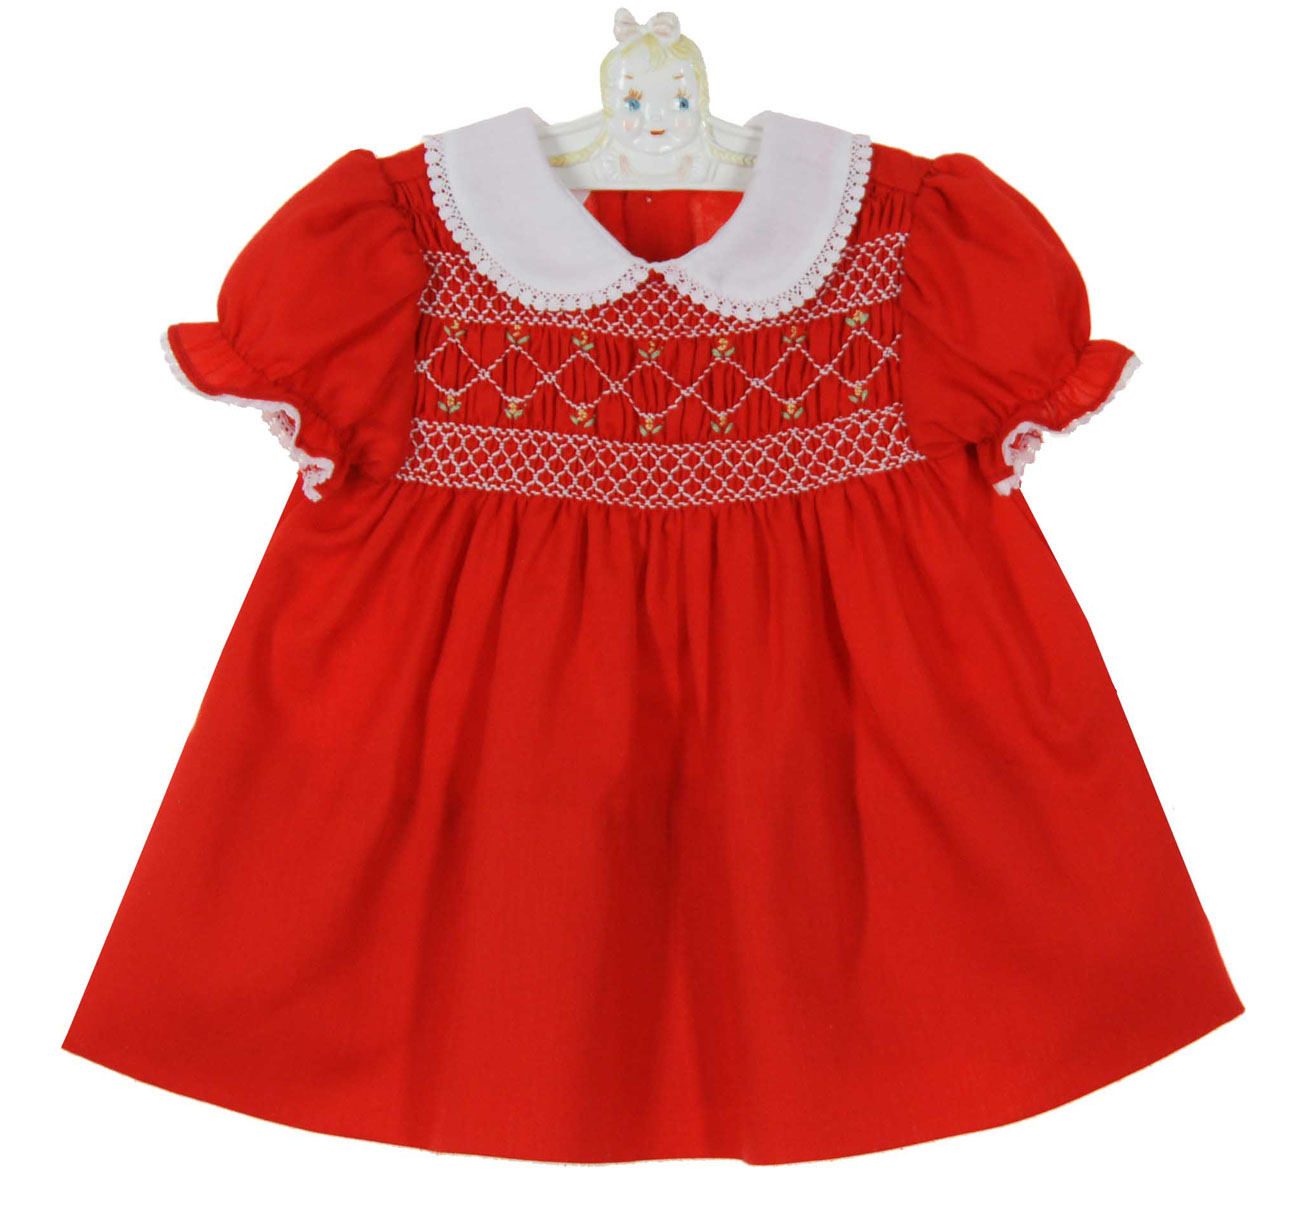 Polly flinders red smocked dress with white lace trimmed collar polly flinders red smocked